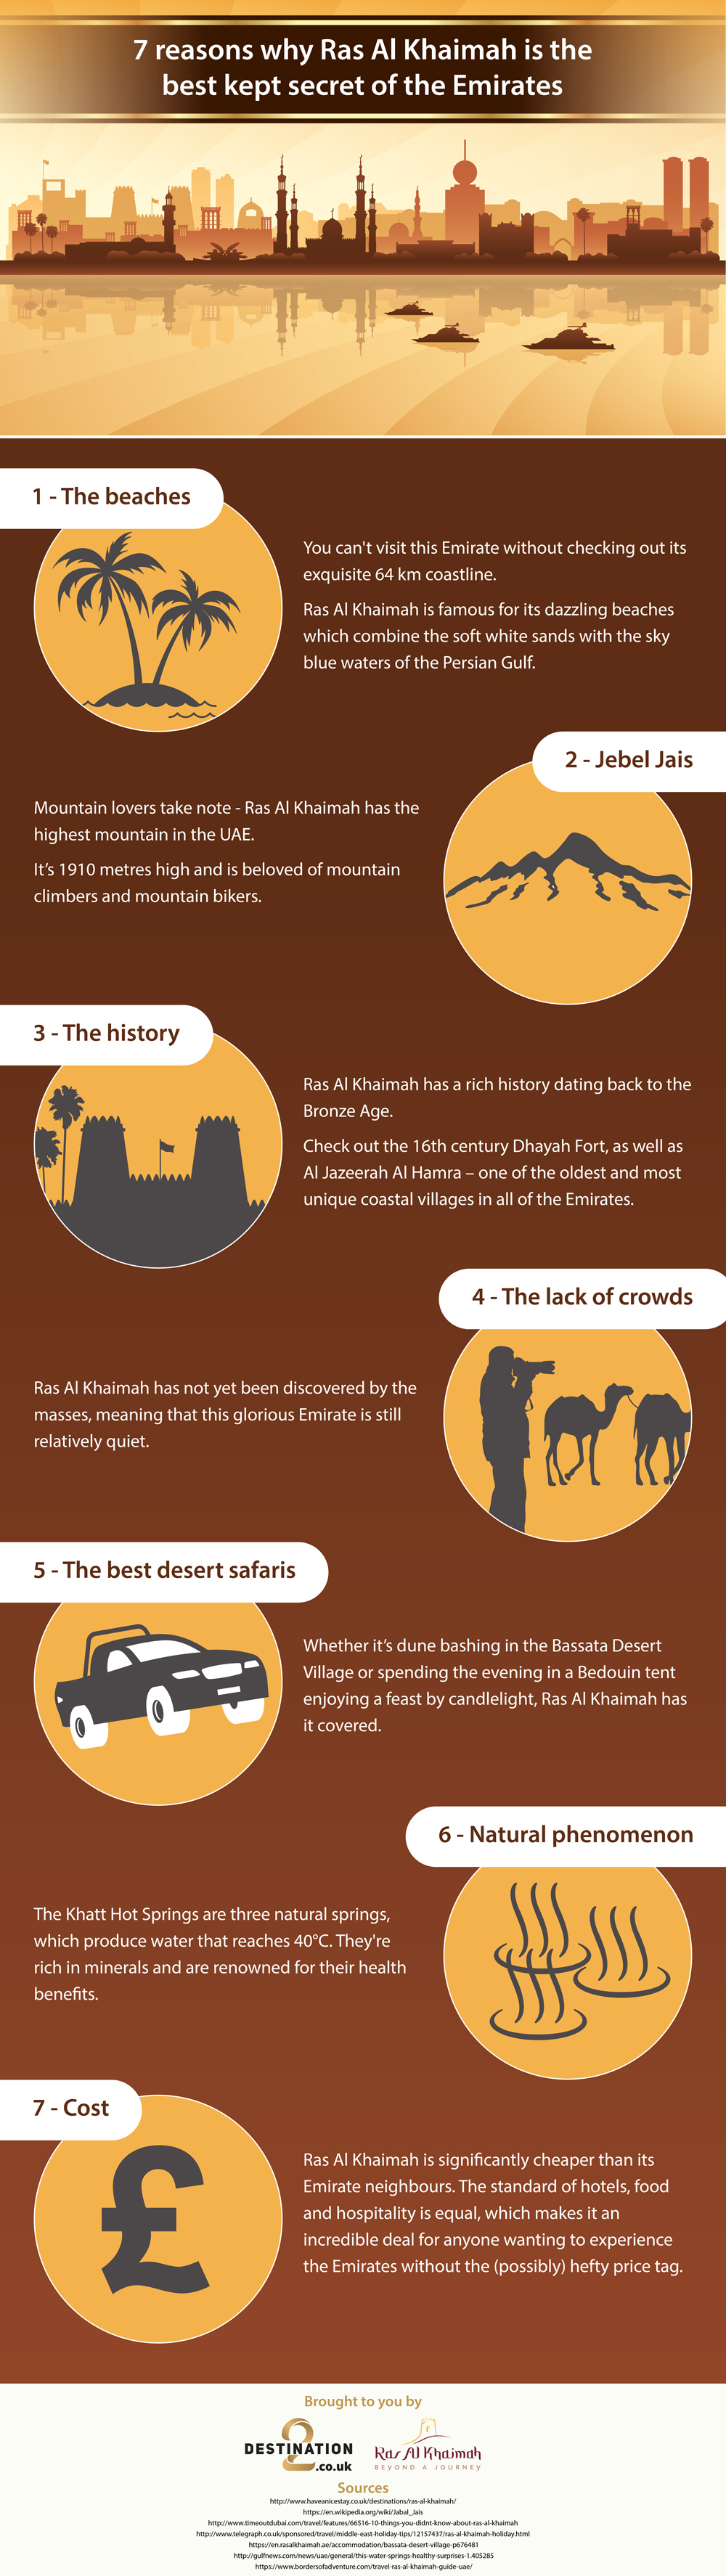 7 reasons why Ras Al Khaimah is the best kept secret of the Emirates